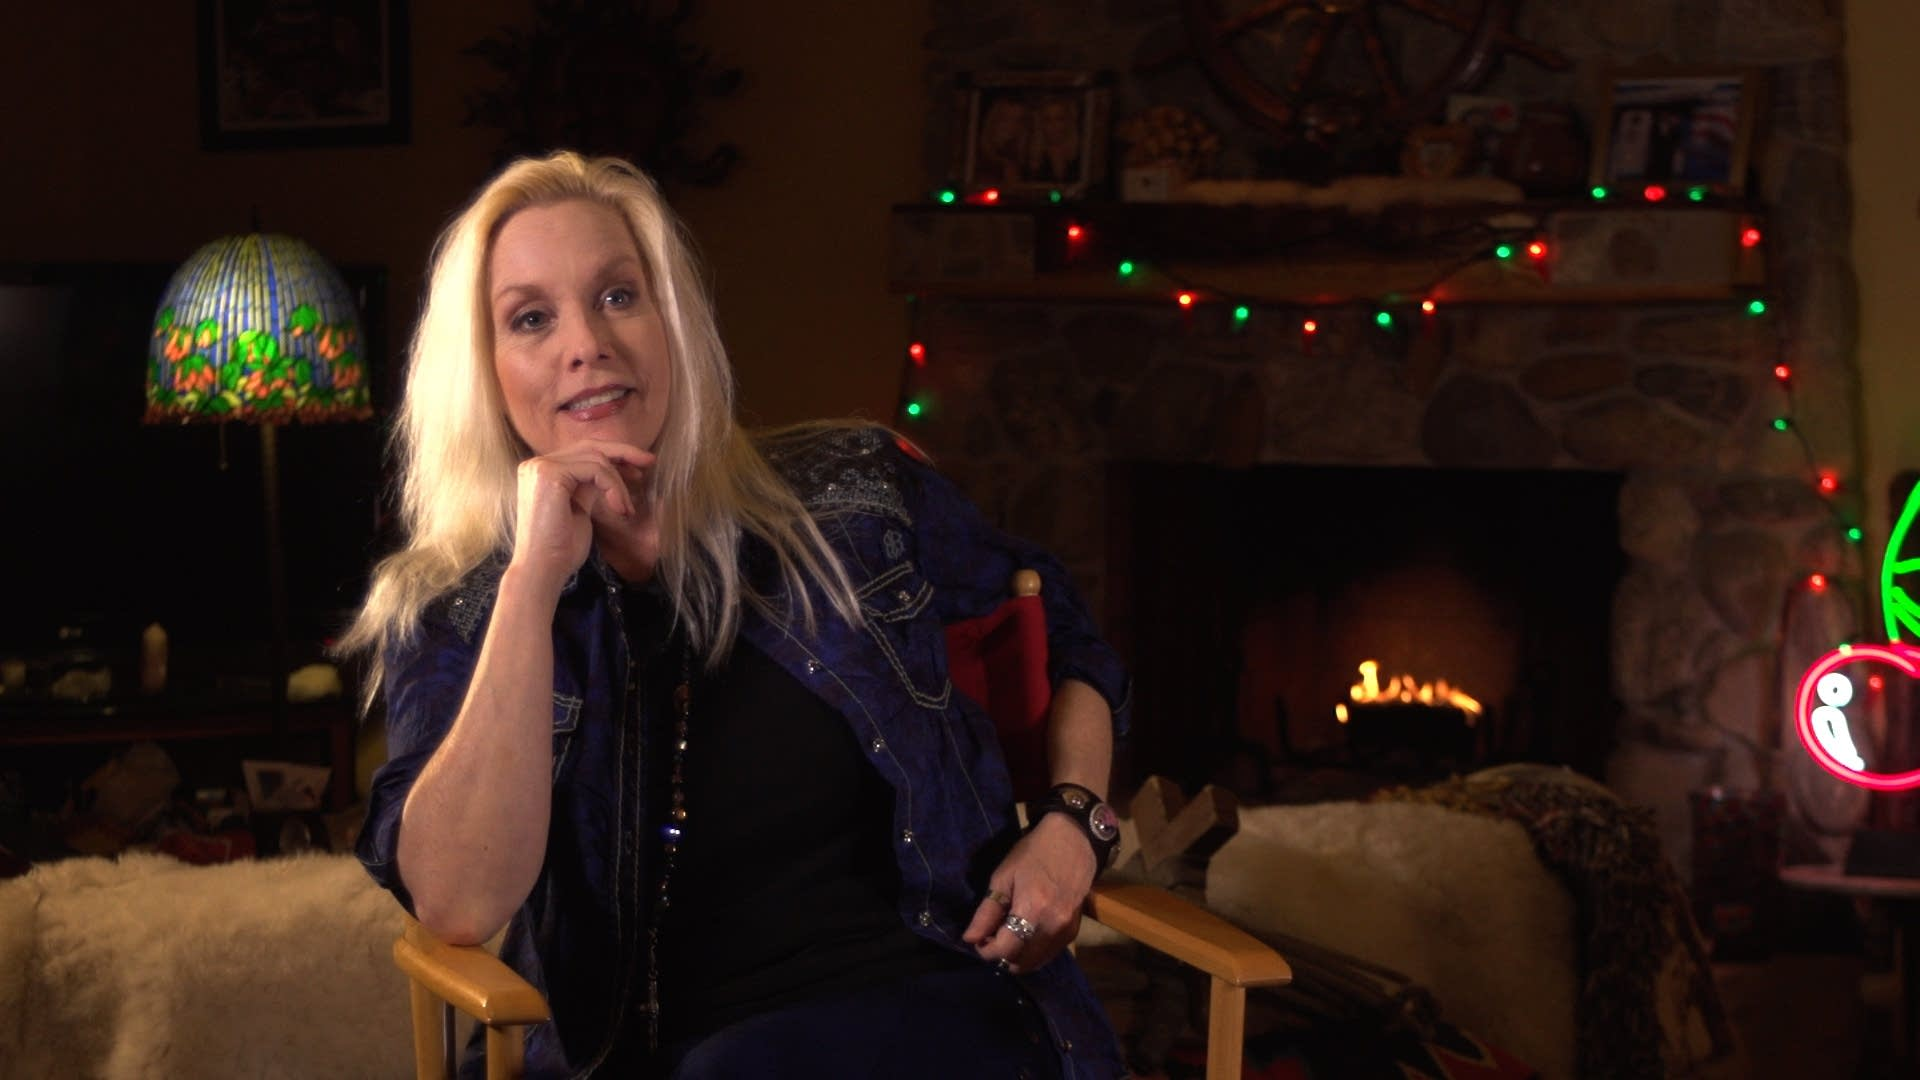 Cherie Currie in the Suzi Quatro documentary